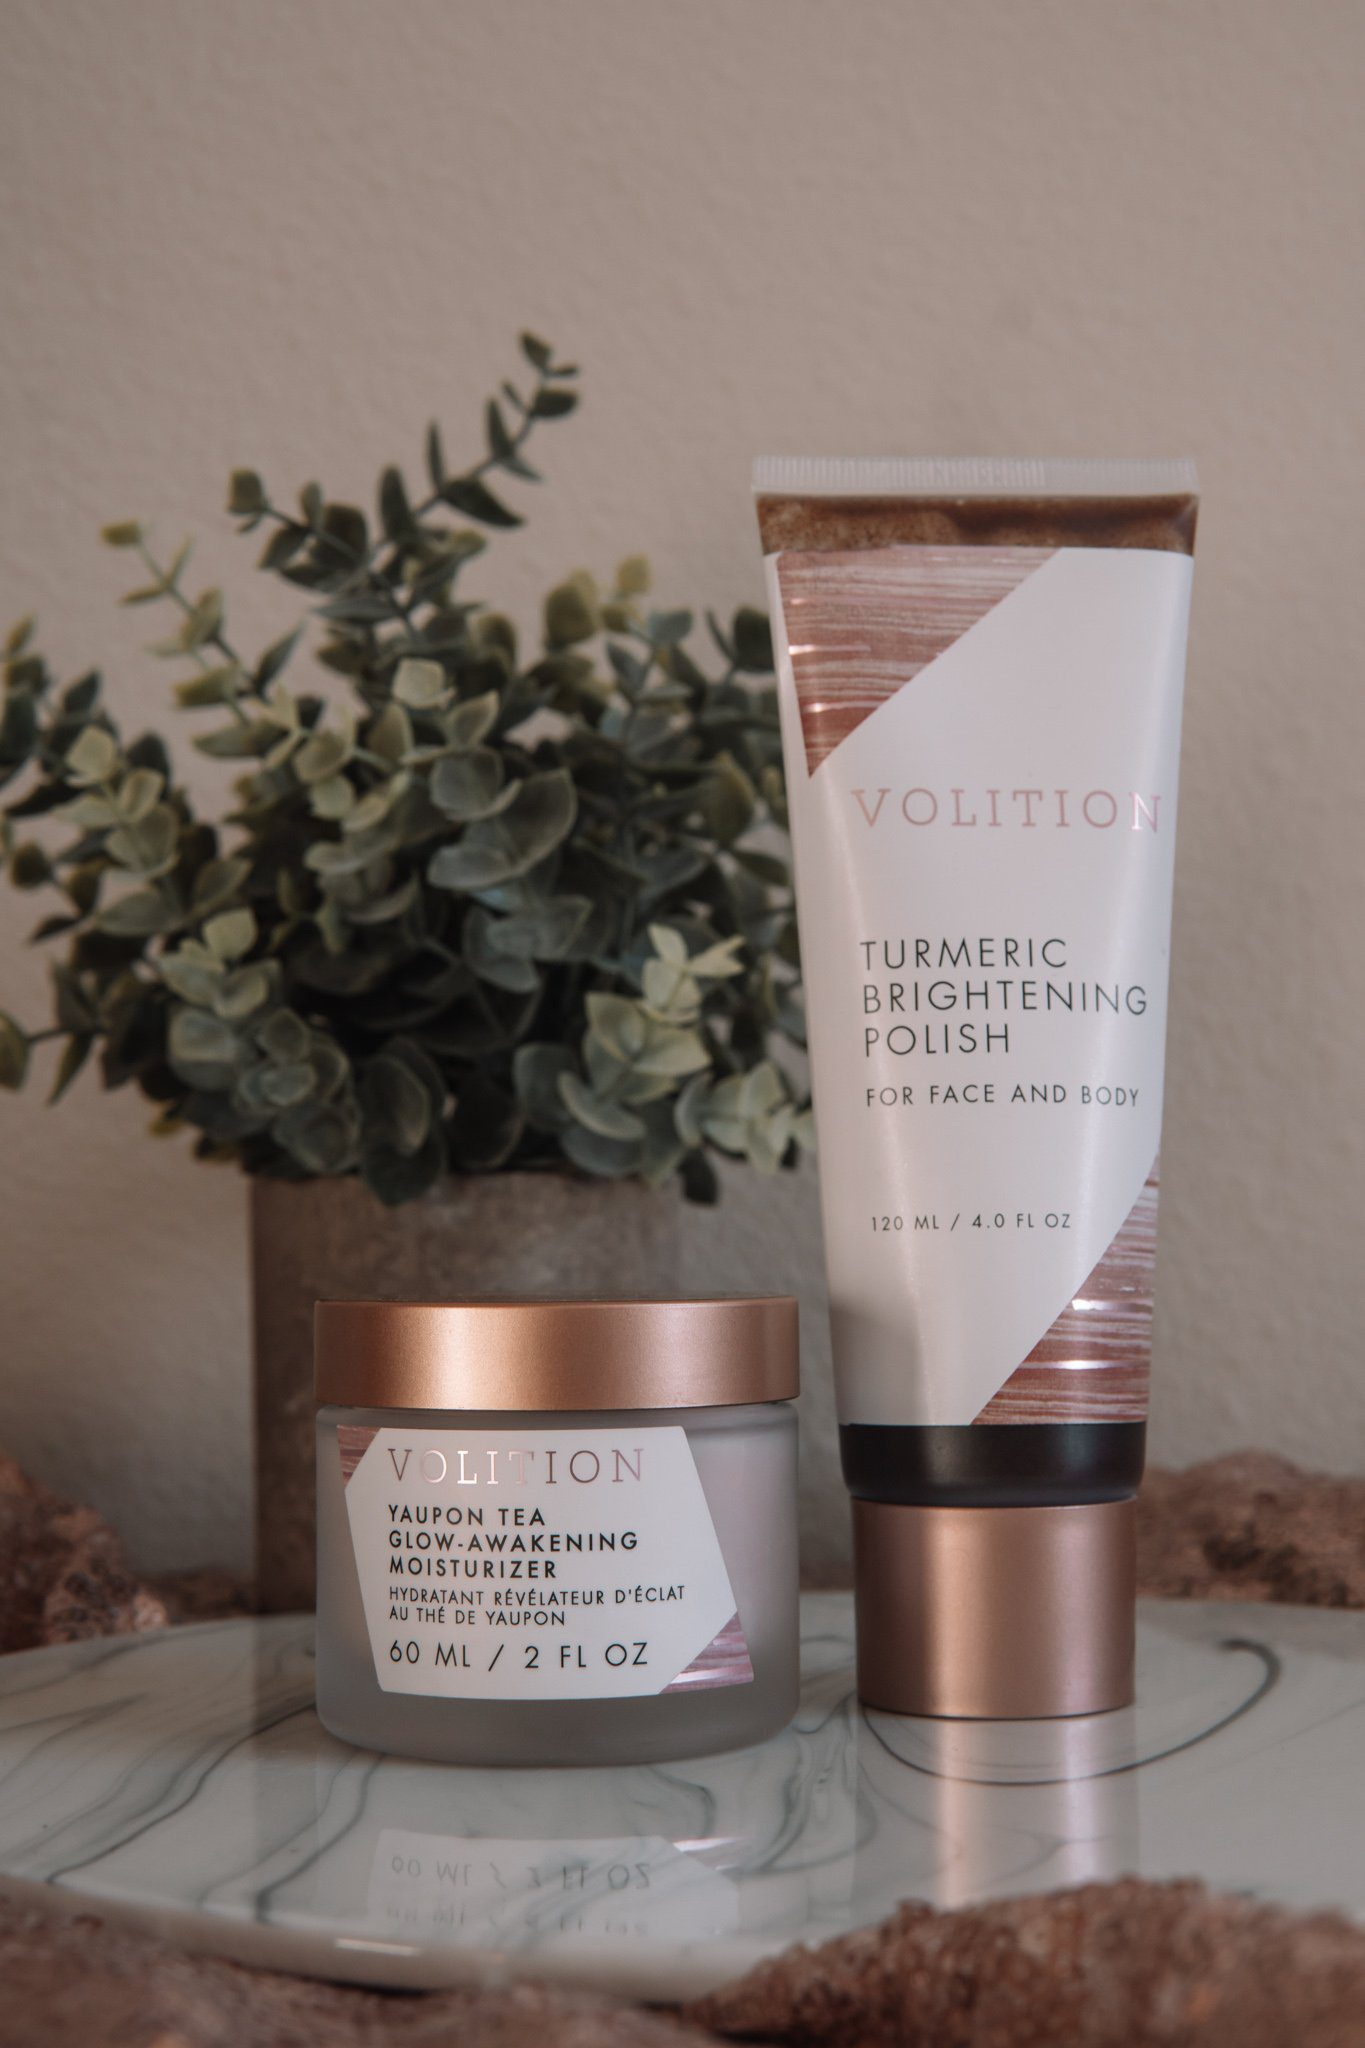 8 Beauty Items I've Added to My Fall Skincare Routine